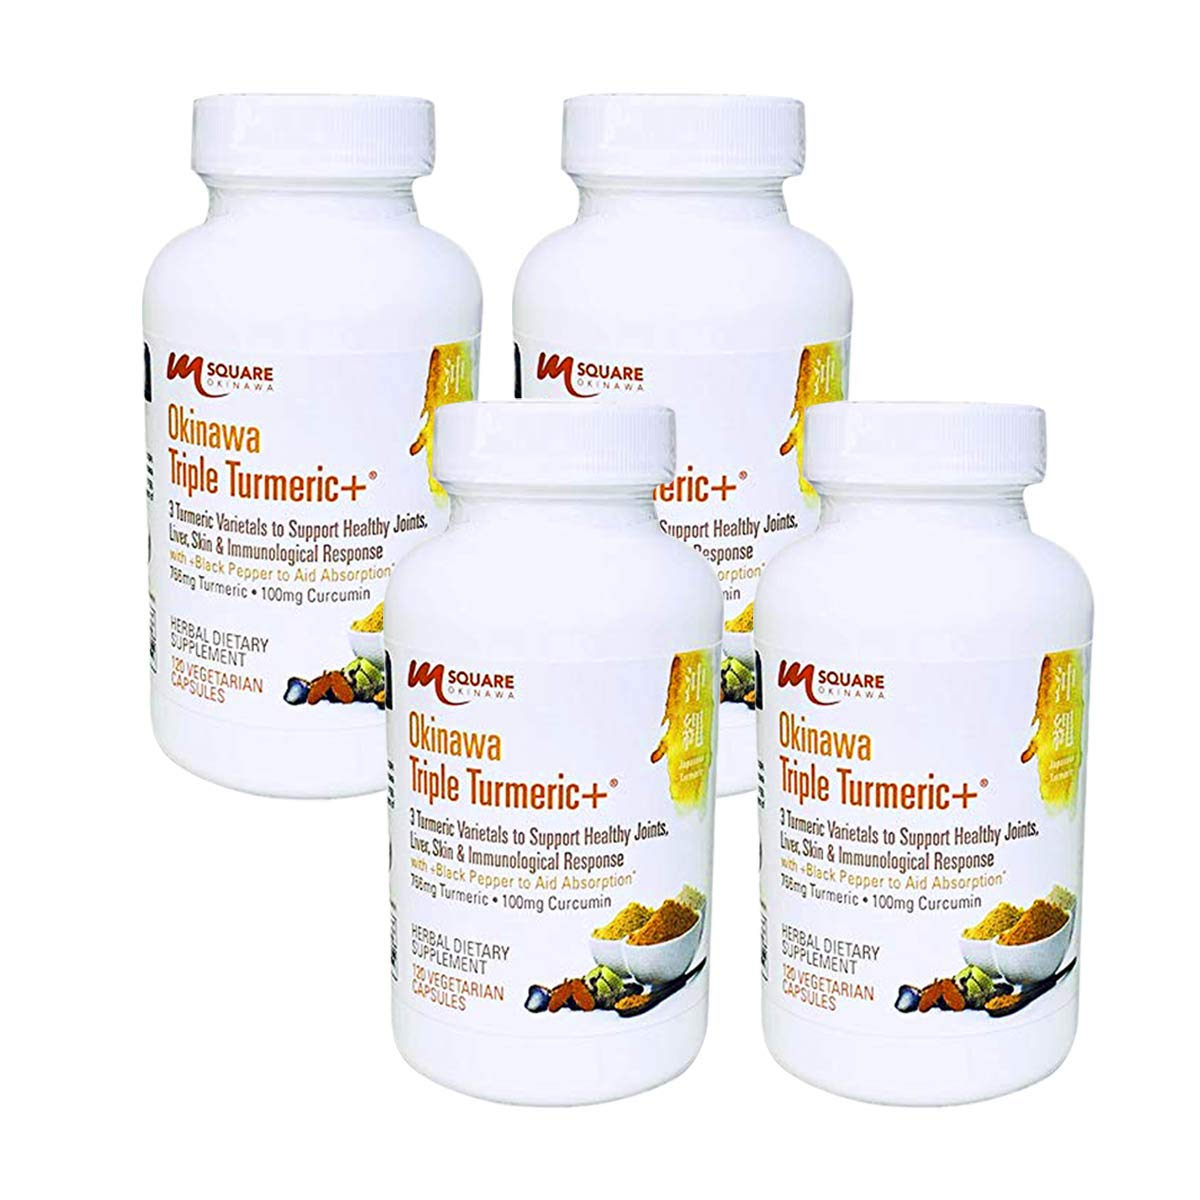 Okinawa Triple Turmeric 3 Turmeric Varietals with Black Pepper to Aid Absorption. 240 Vegetarian Capsules. 4 Bottles